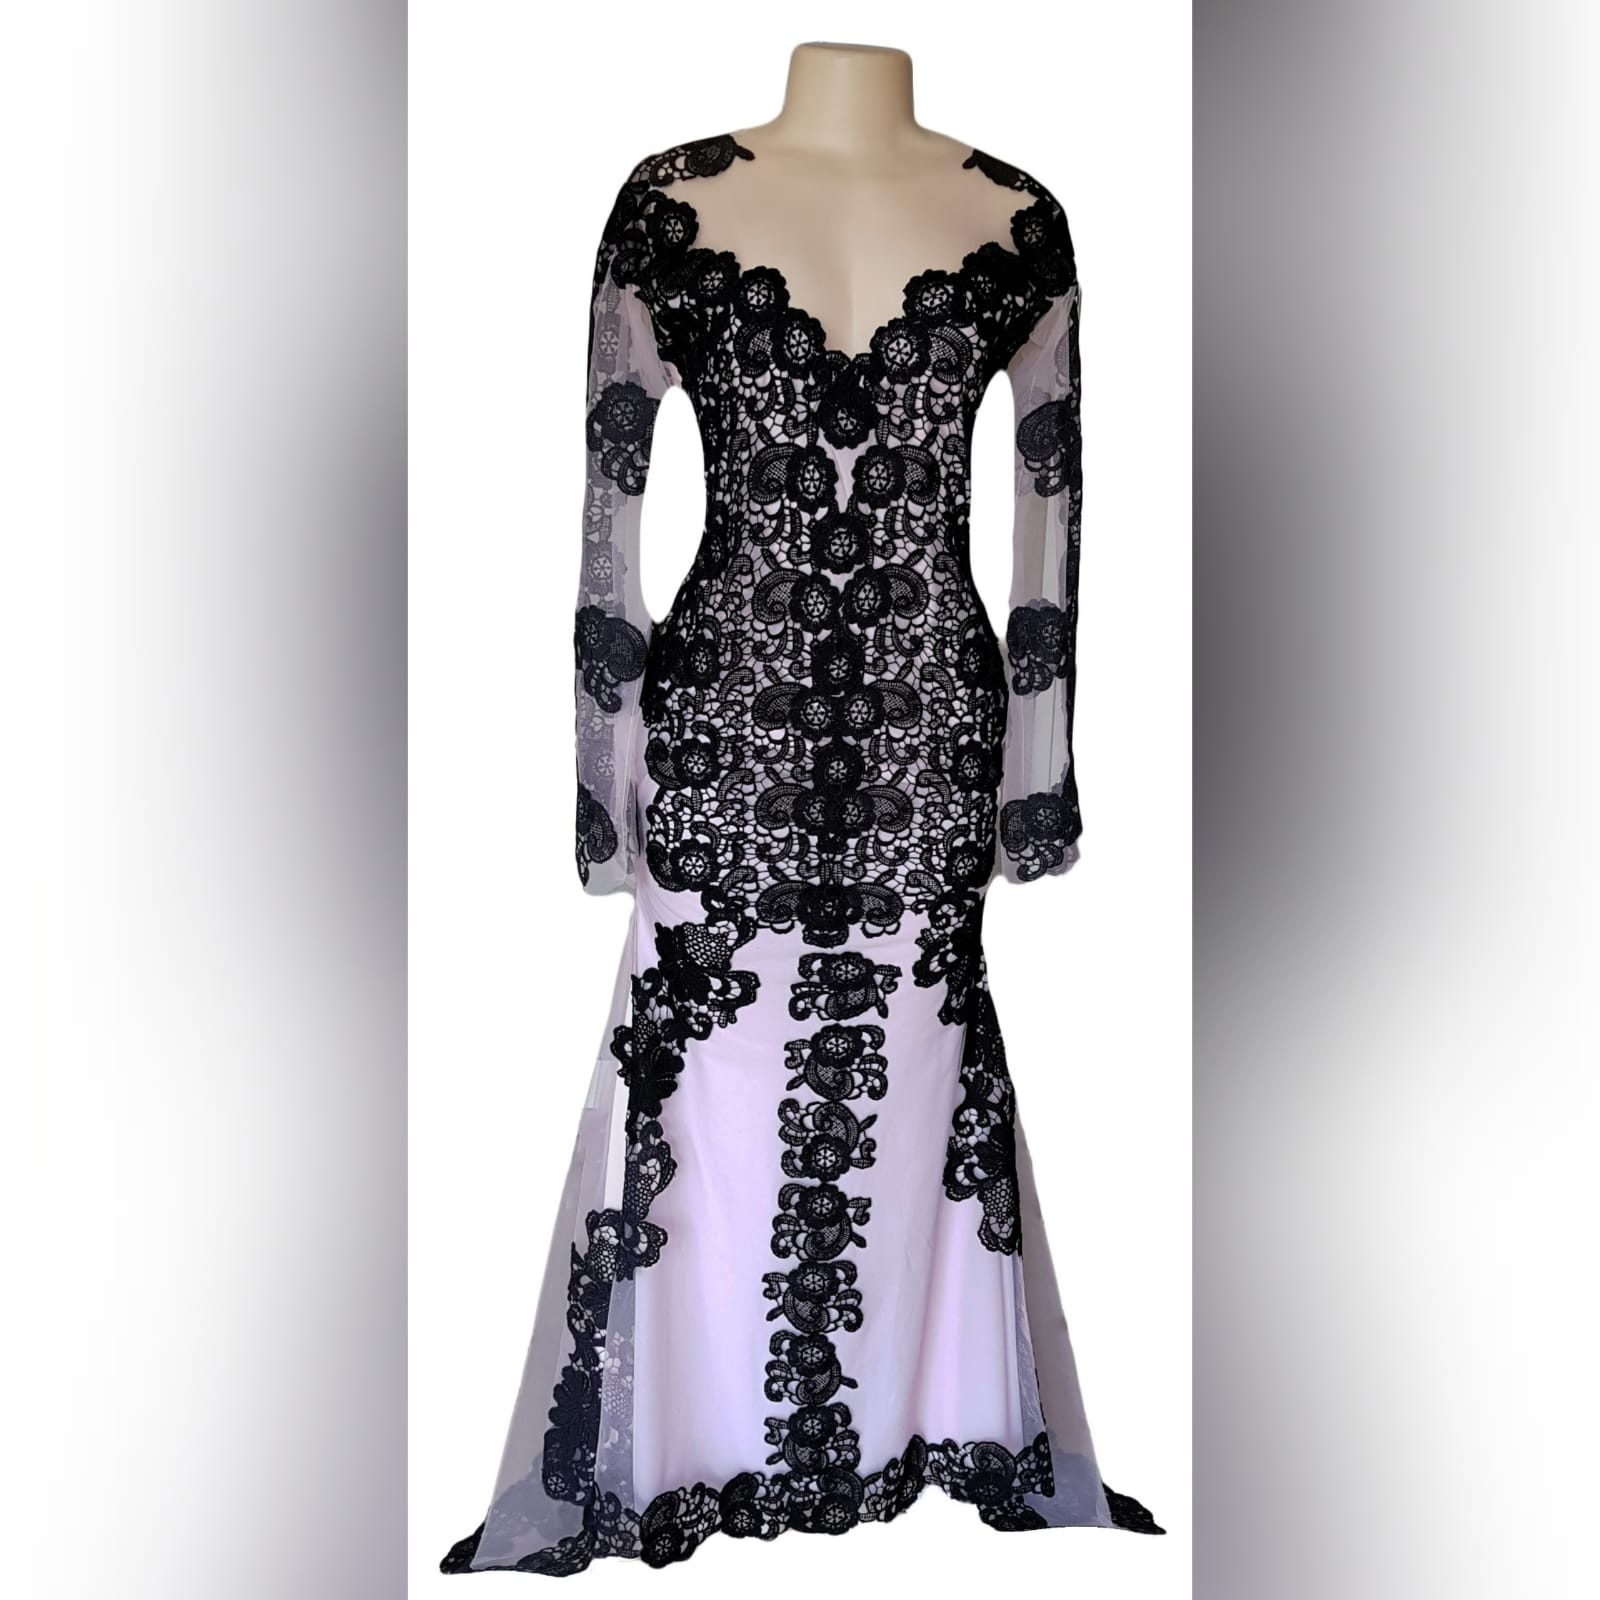 Black & nude lace formal awards ceremony dress 2 black & nude lace formal awards ceremony dress with long illusion lace sleeves, a train and covered buttons for back detail.